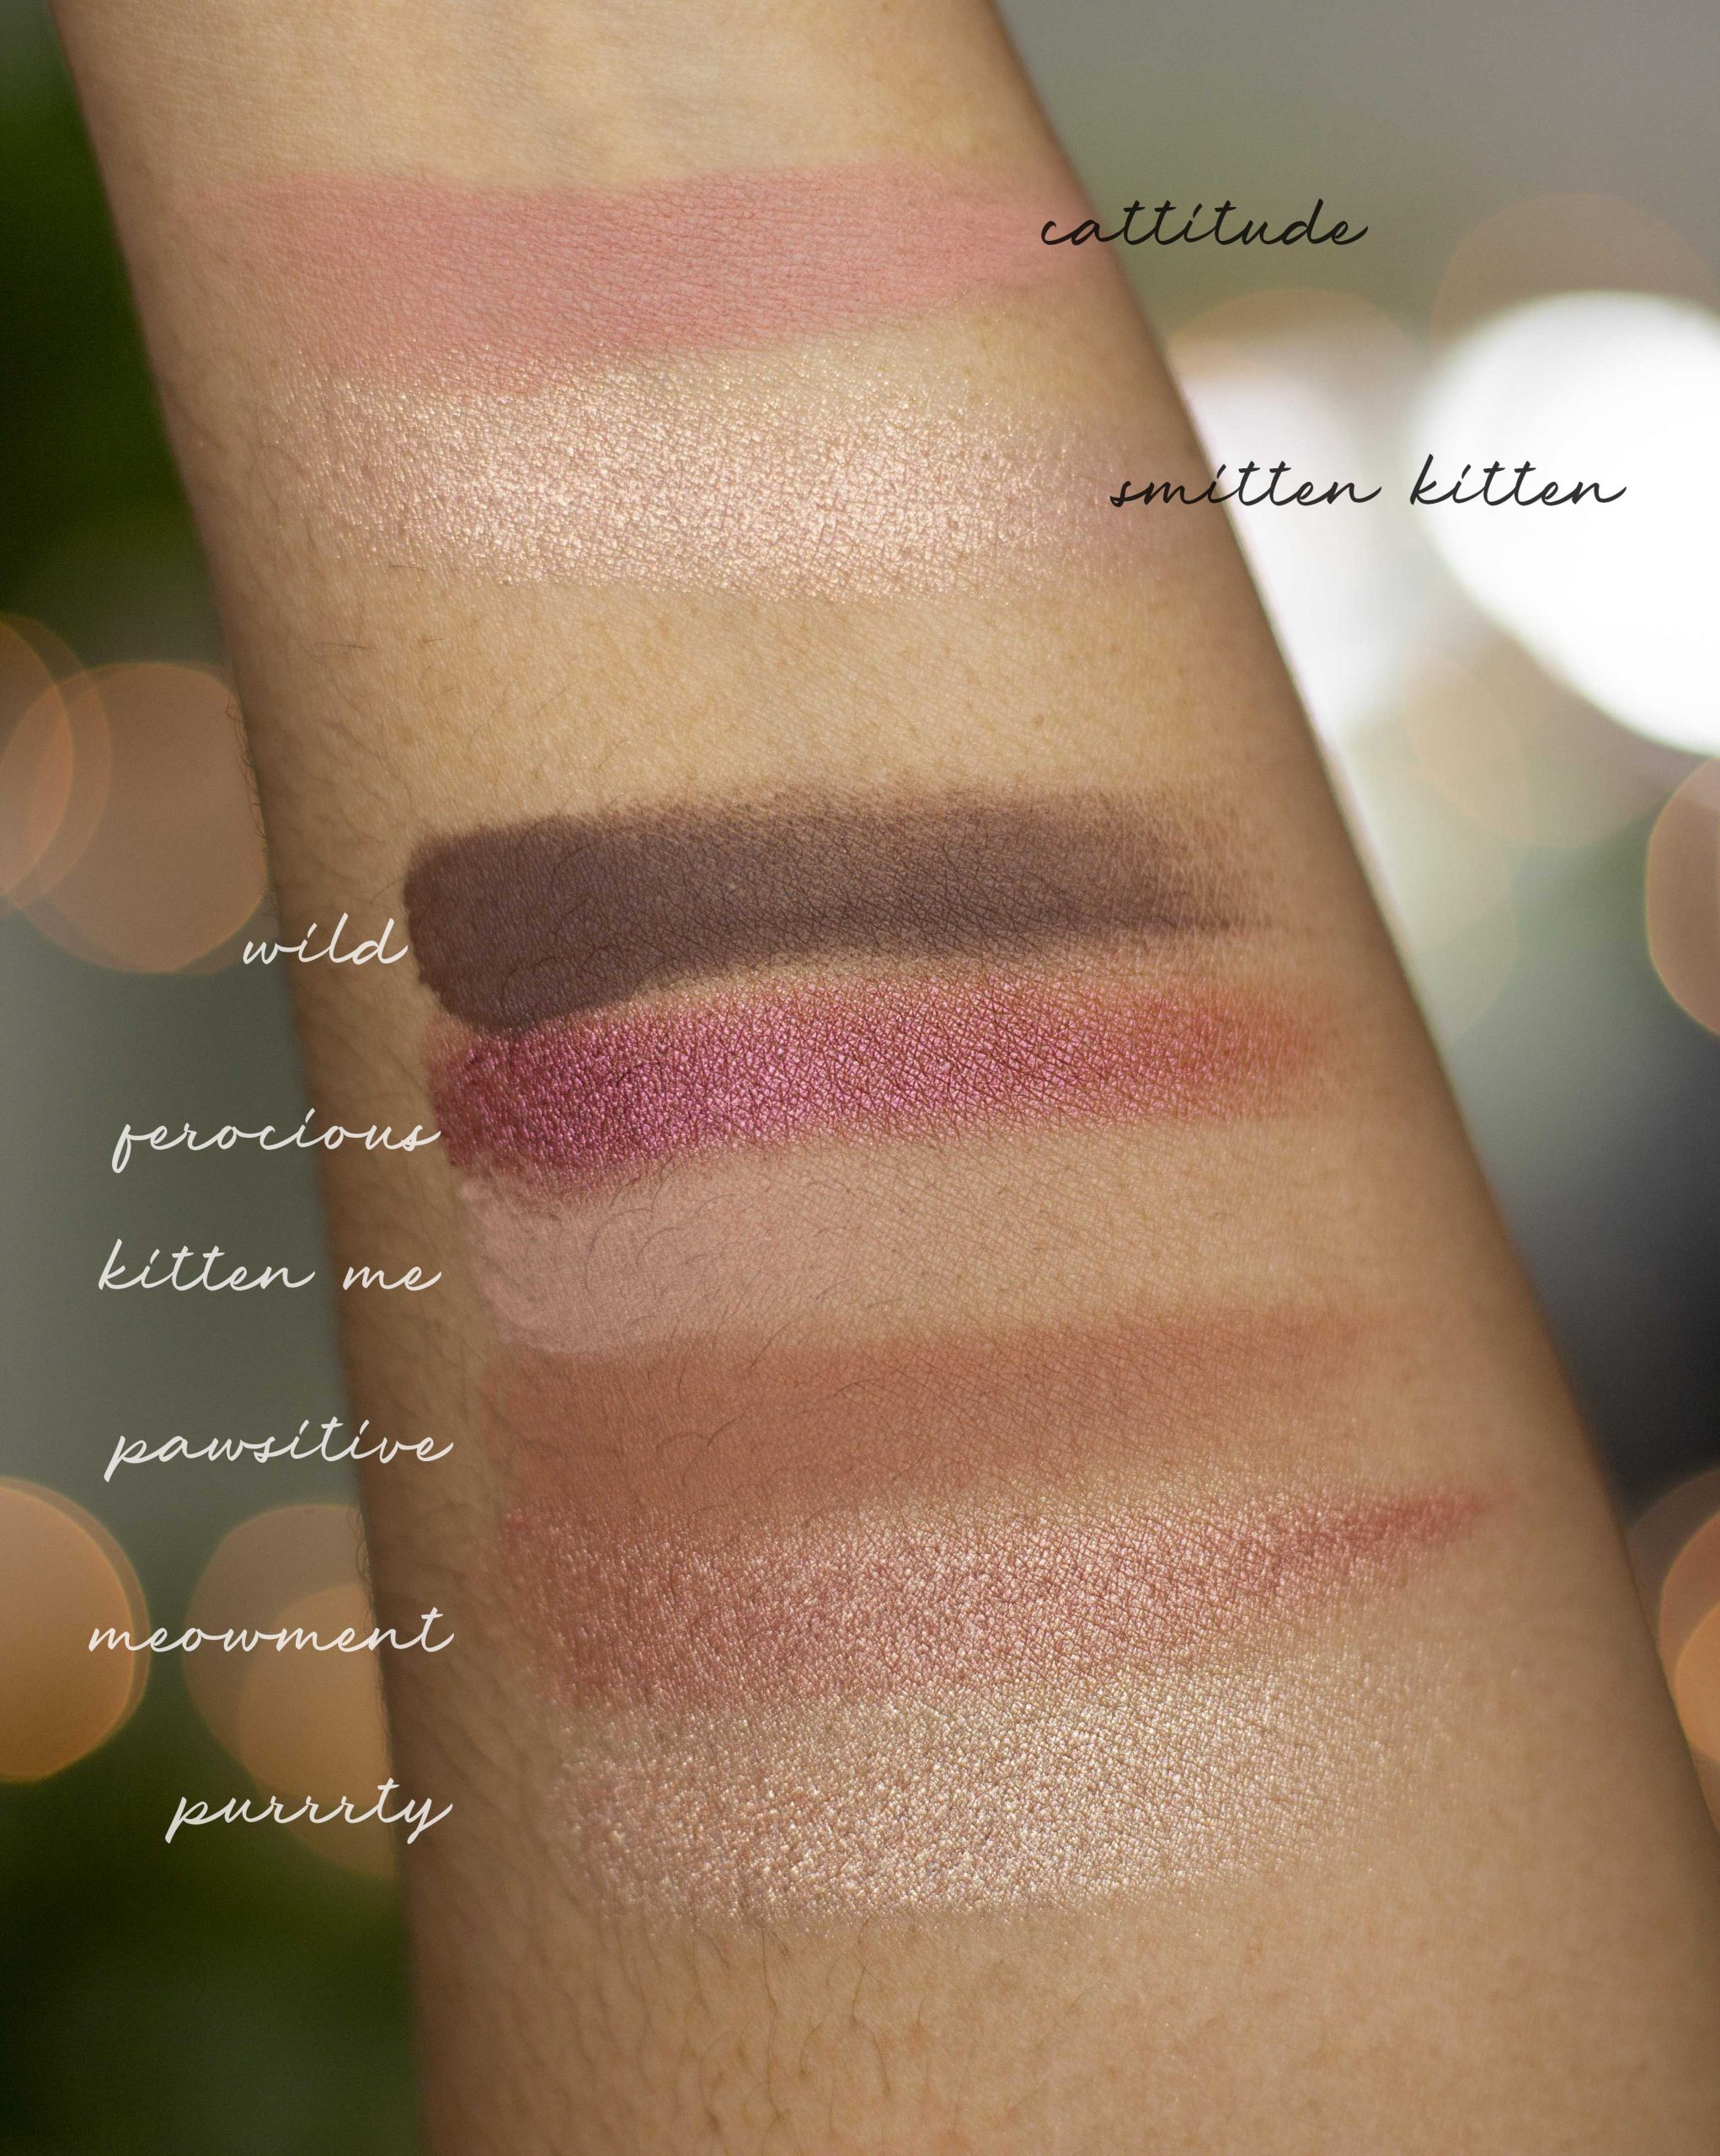 Tarte Maneater Palette swatches in brown skin